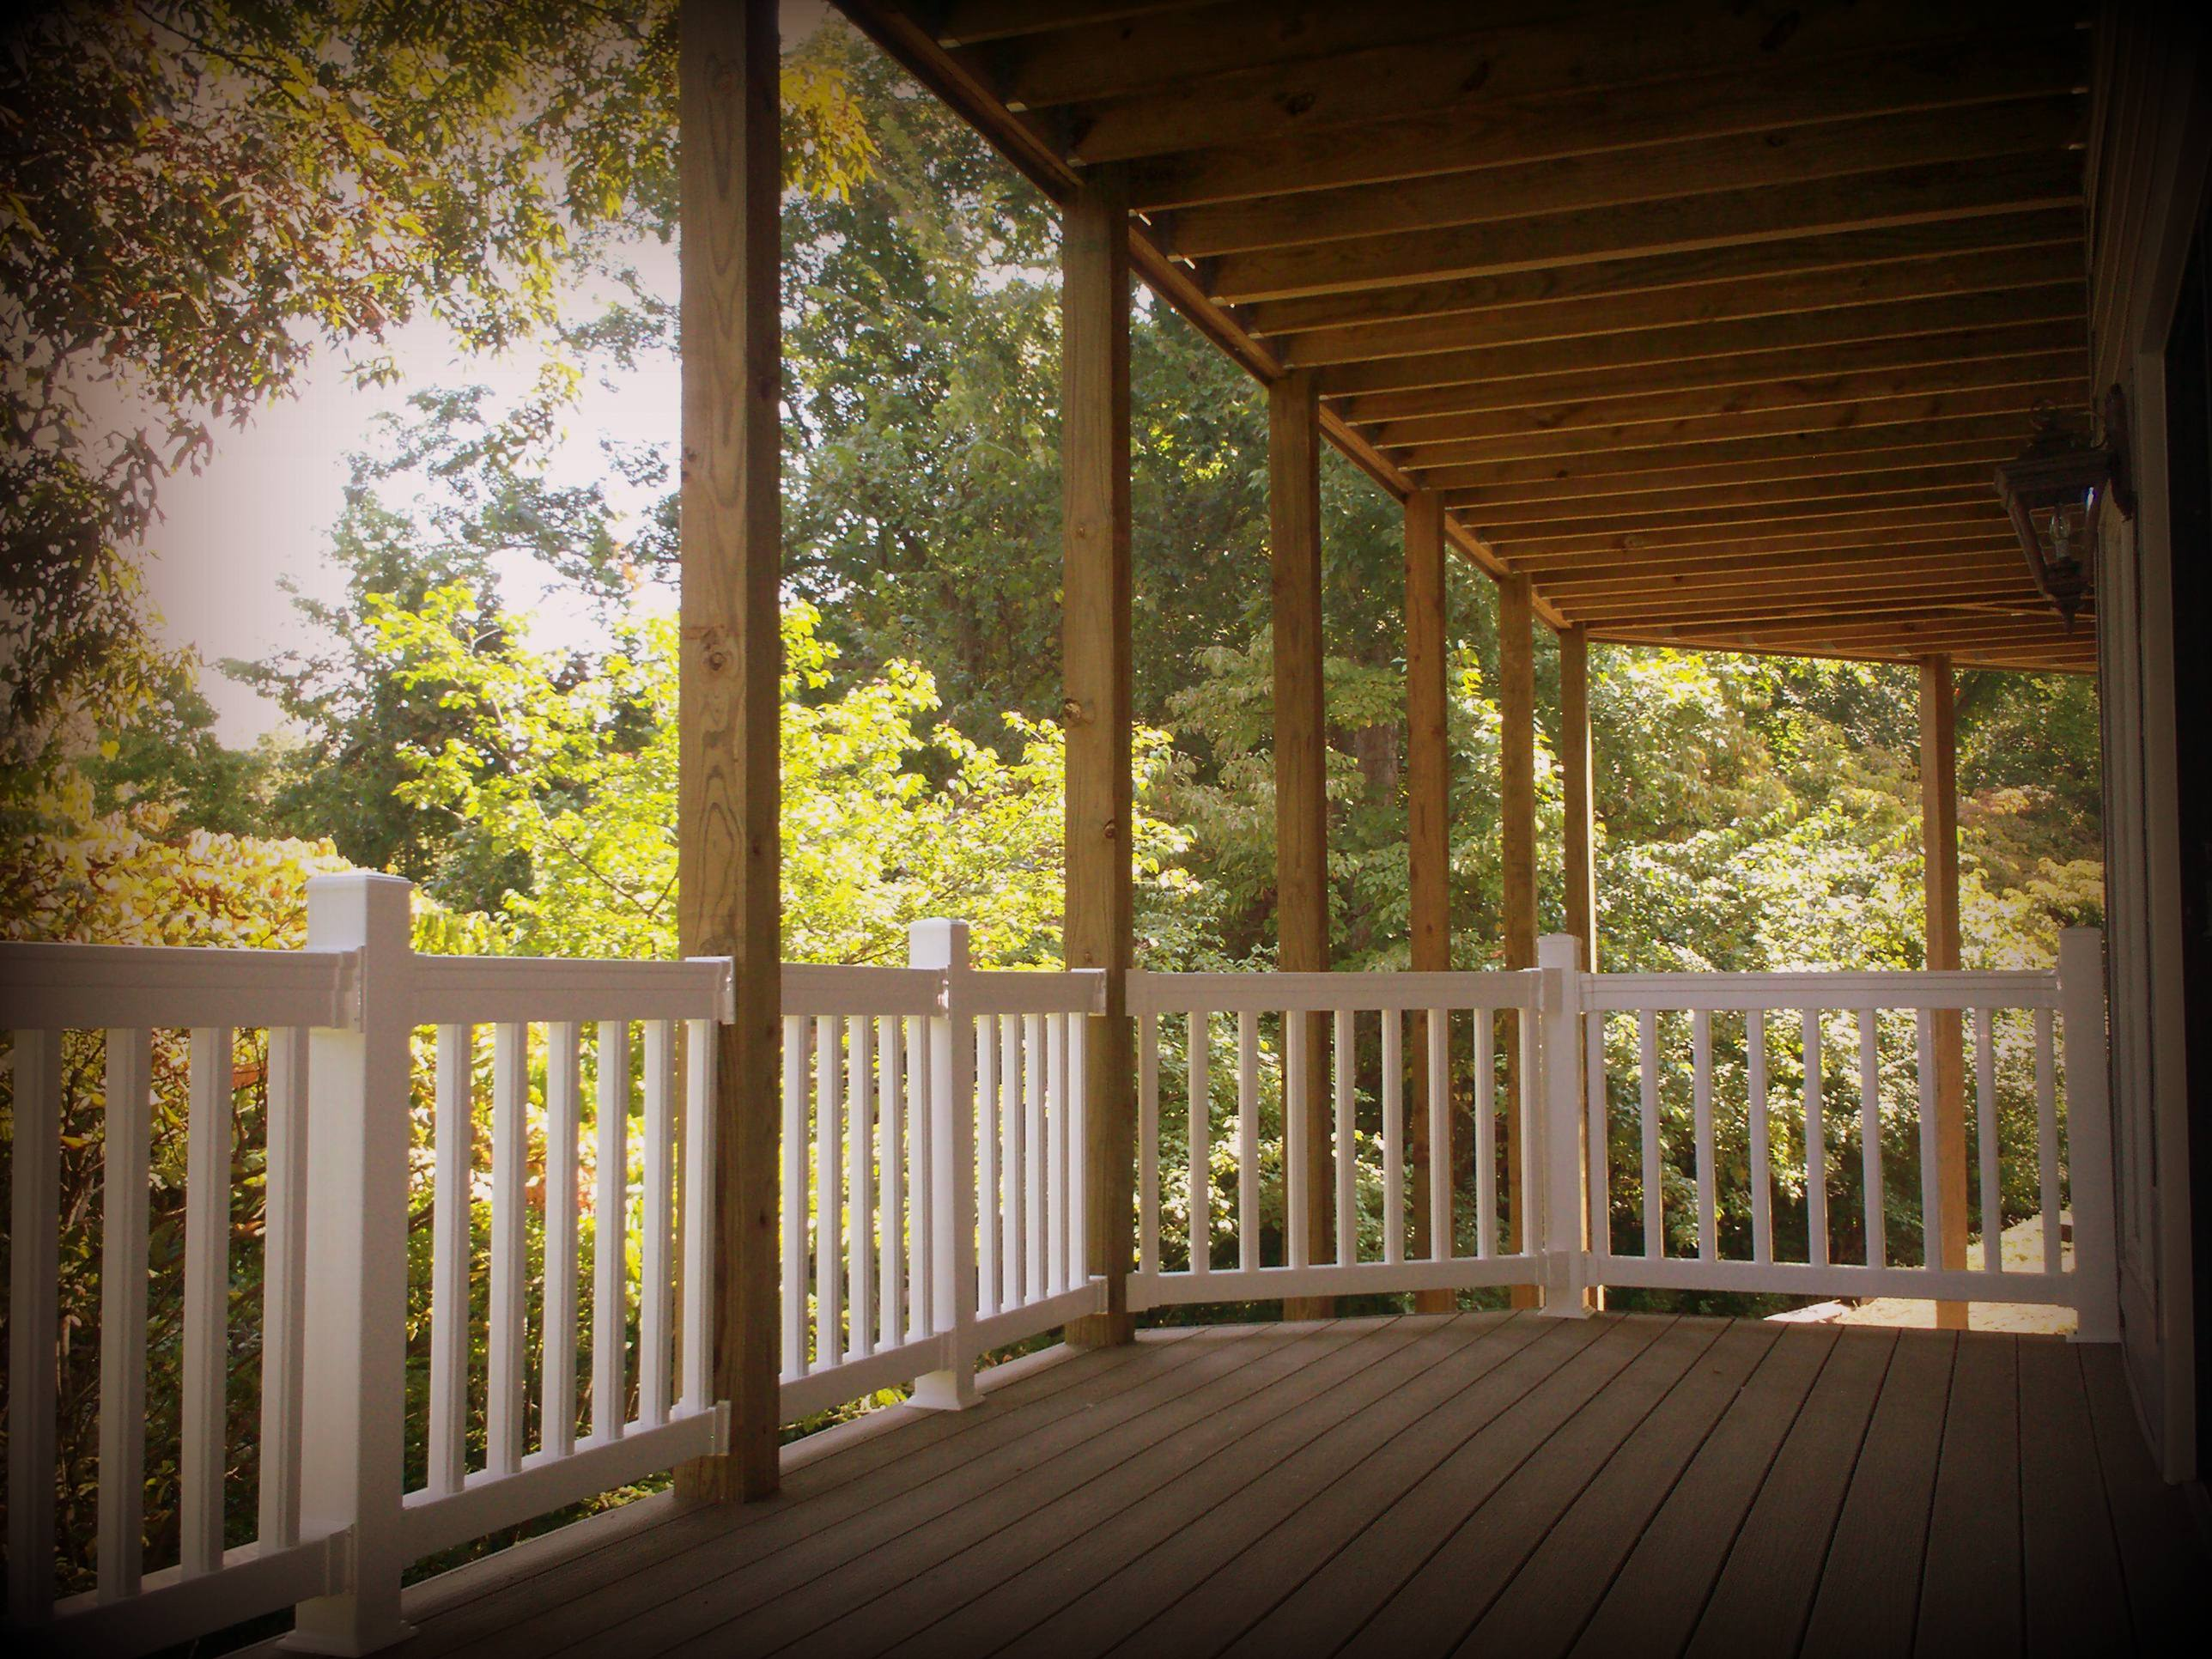 Backyard pavilions st louis decks screened porches for Coverd deck